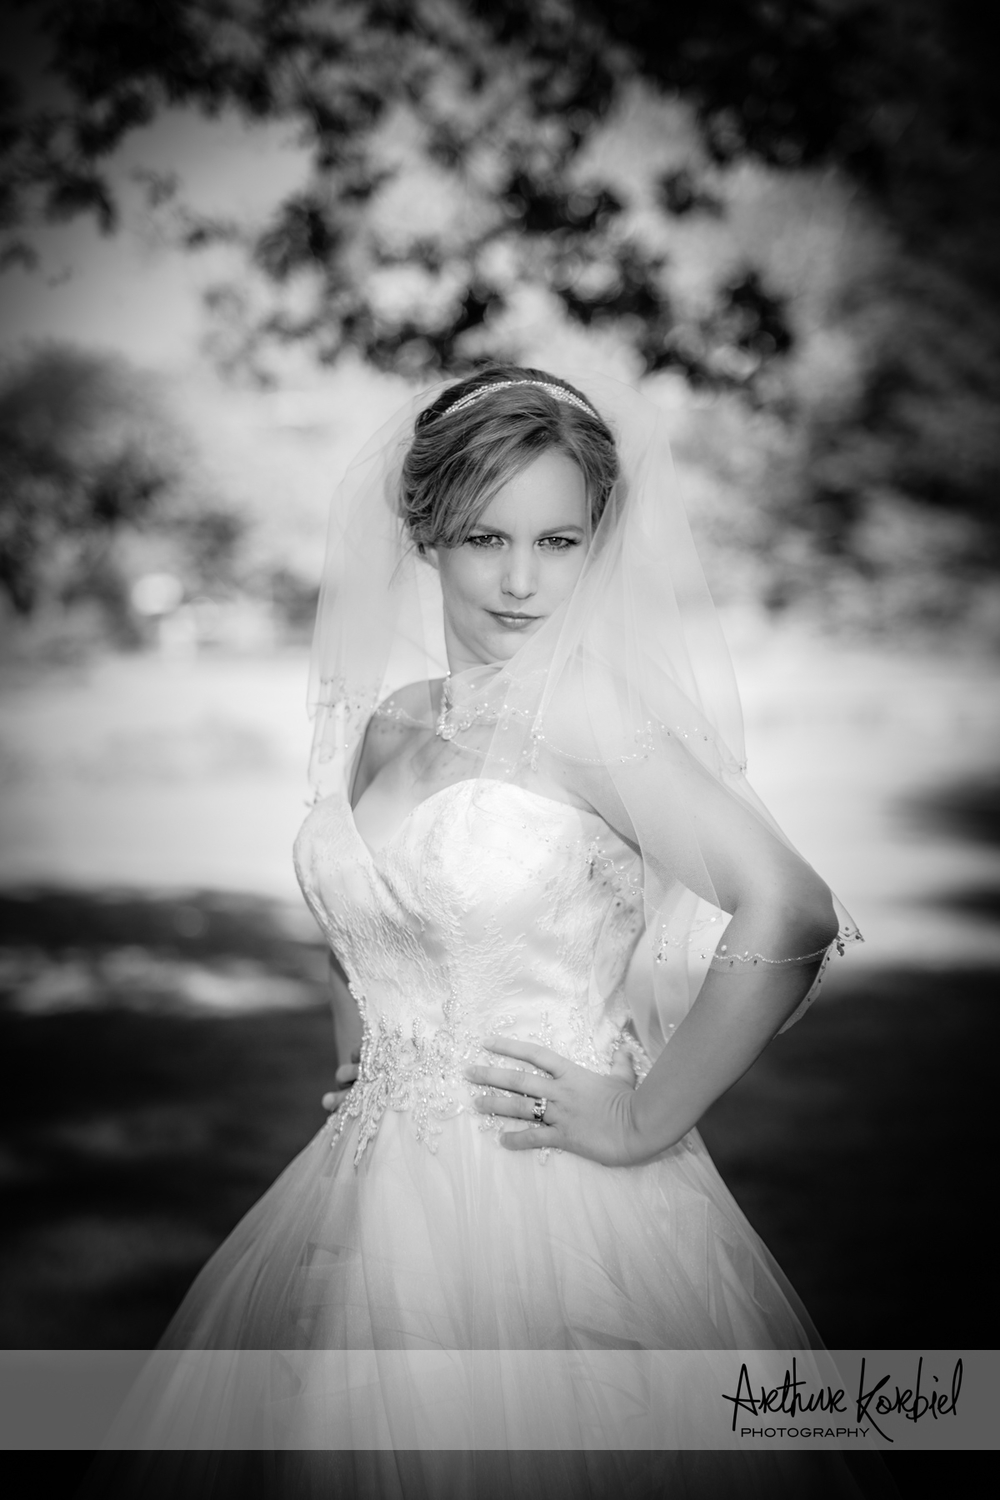 Arthur Korbiel Photography - London Wedding Photographer-008.jpg